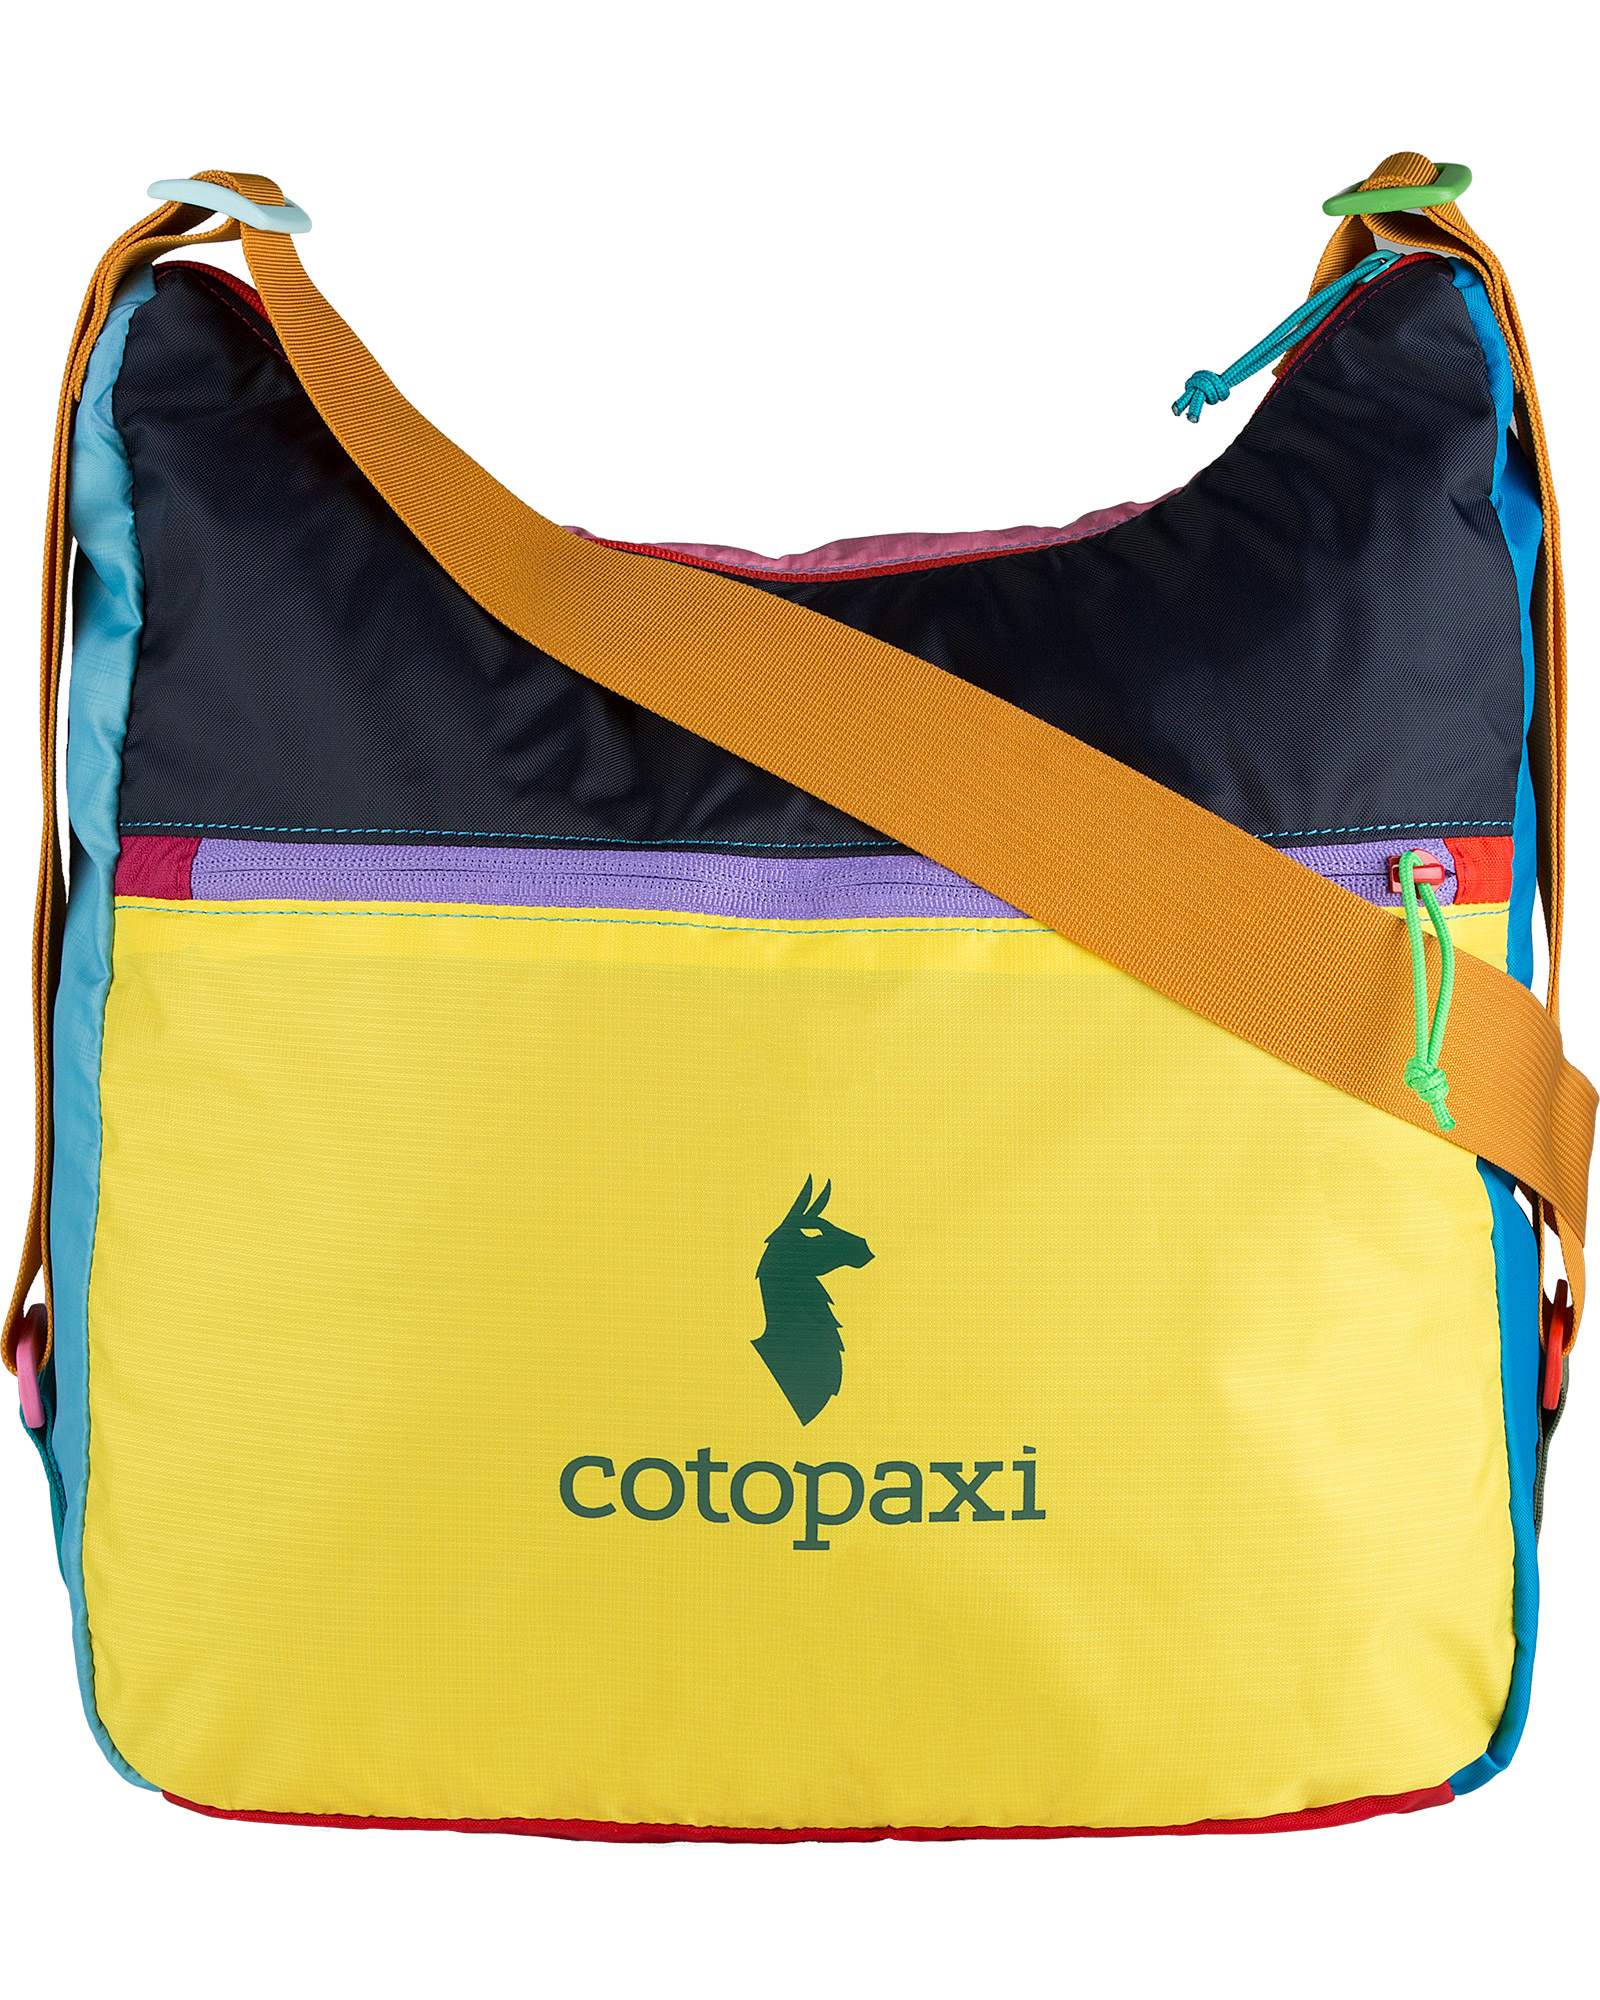 Cotopaxi Taal 15L Convertible Tote 0